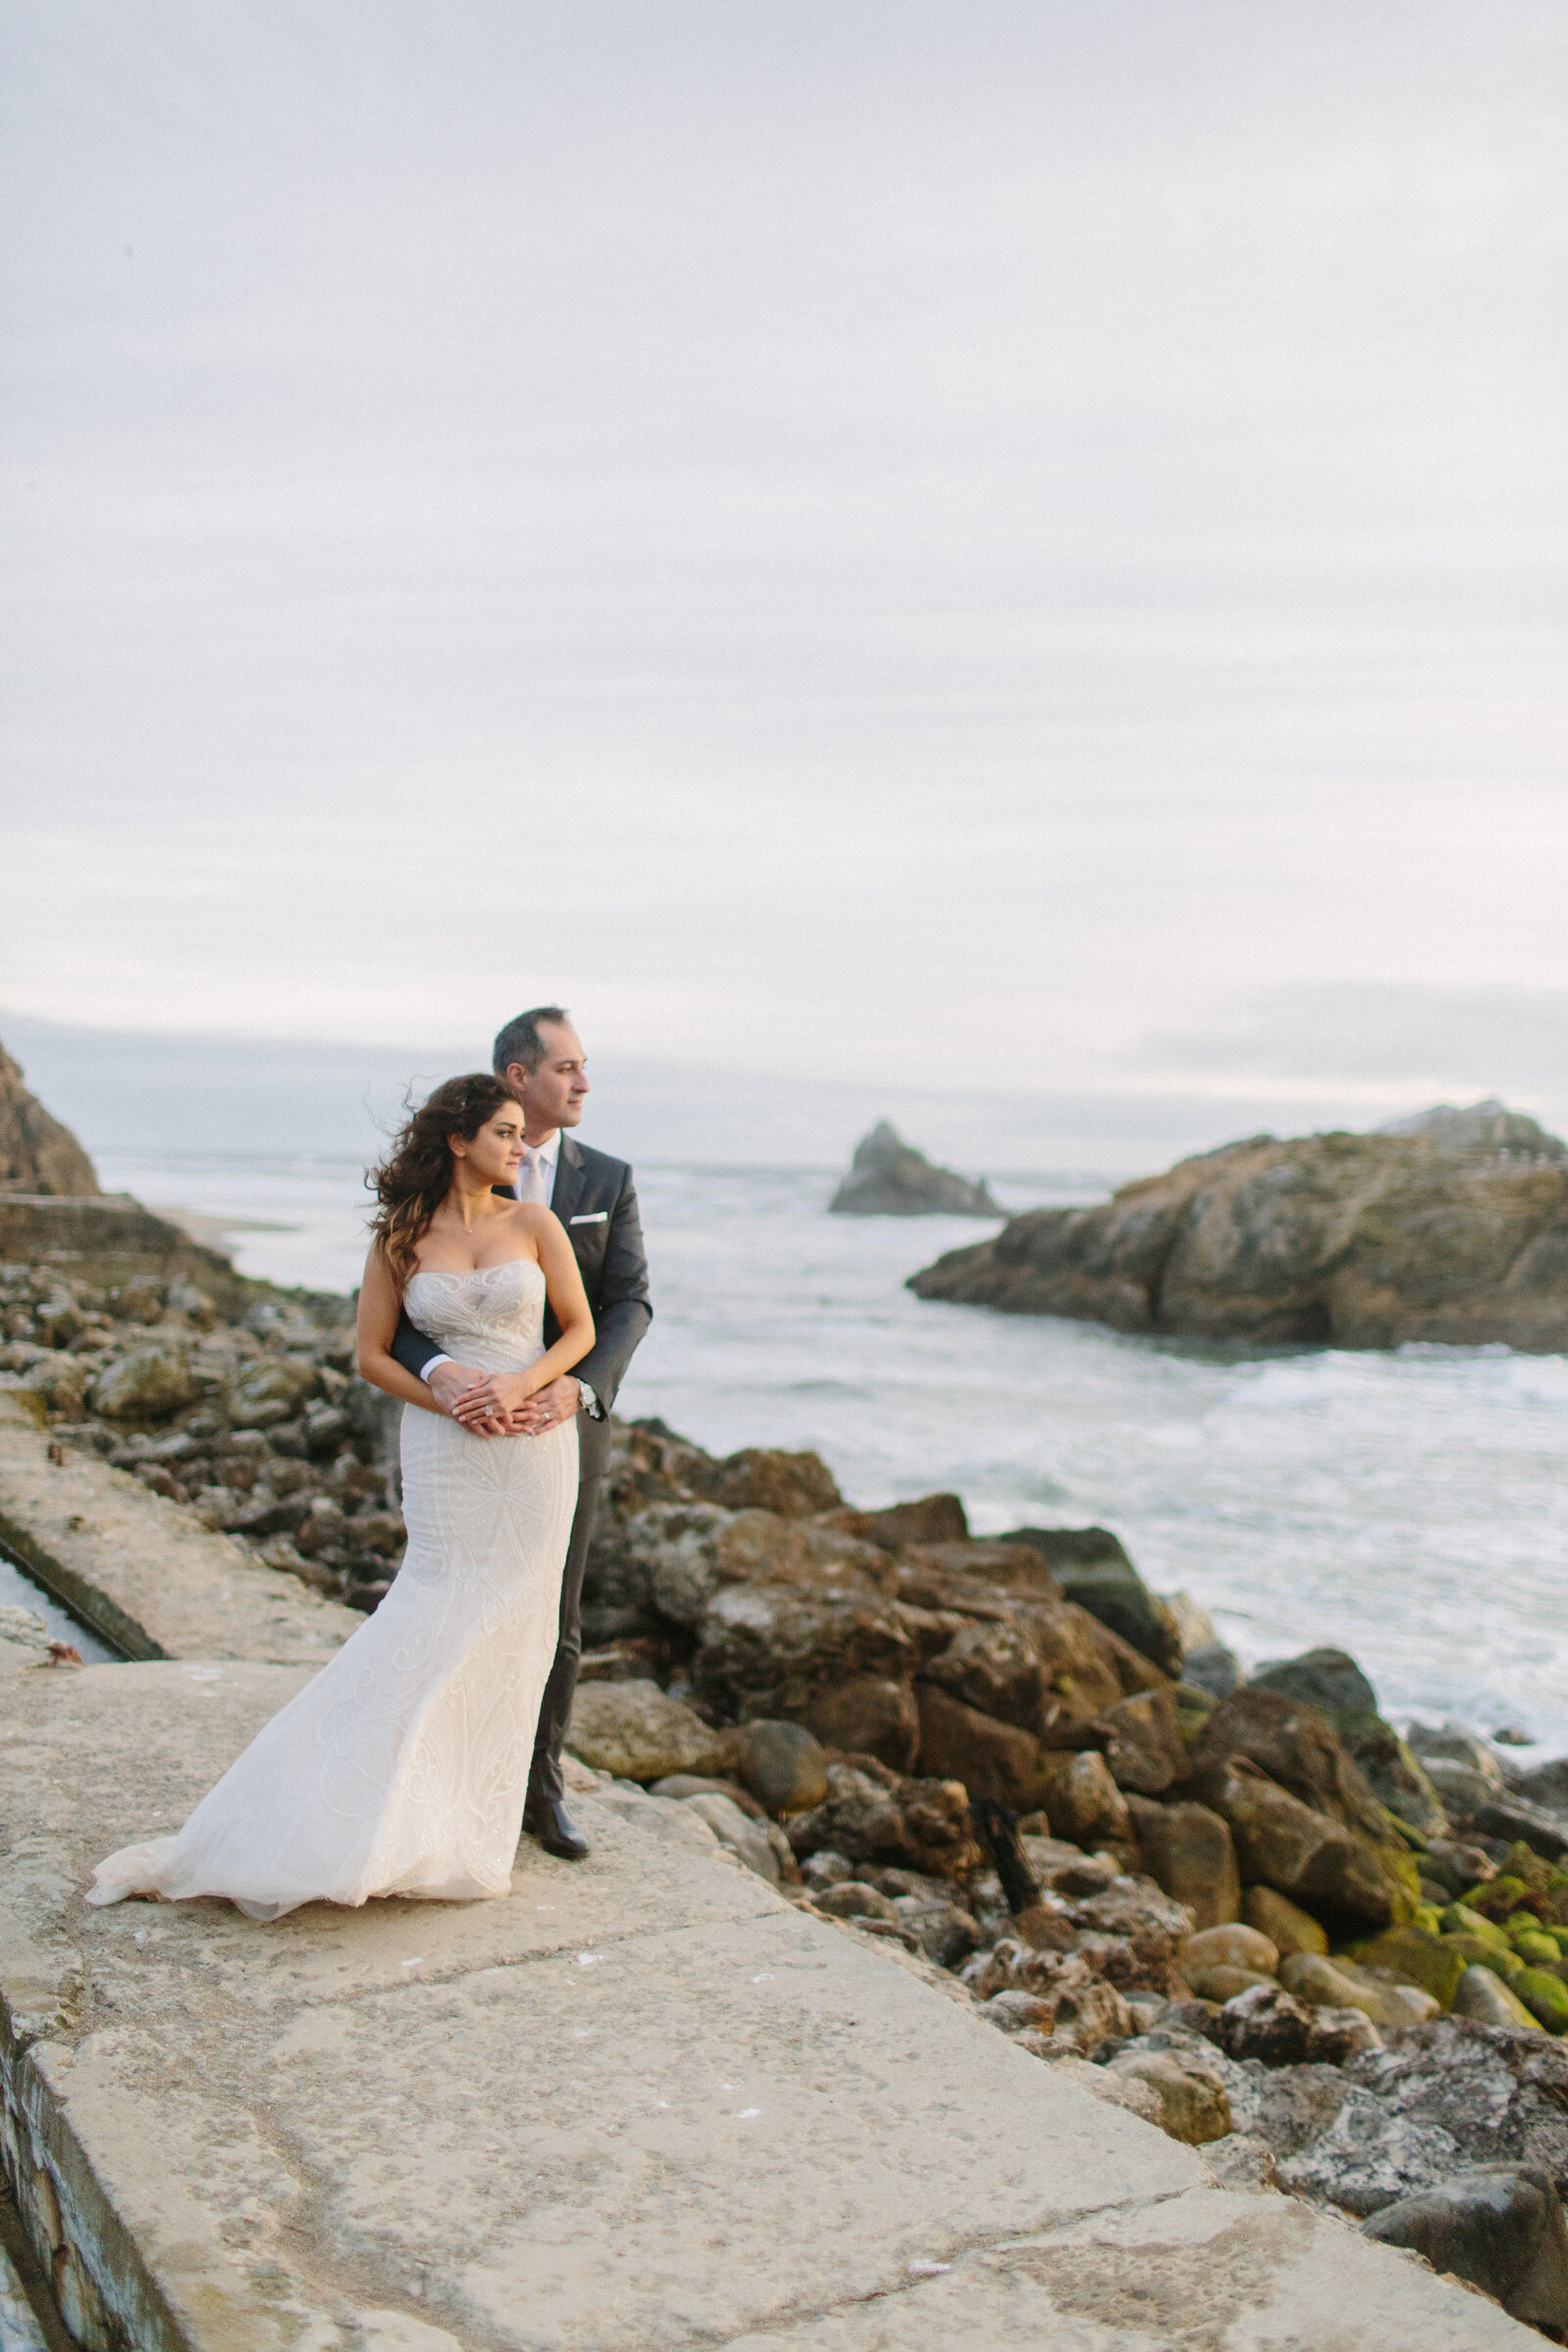 larissa-cleveland-elope-eleopement-intimate-wedding-photographer-san-francisco-napa-carmel-070